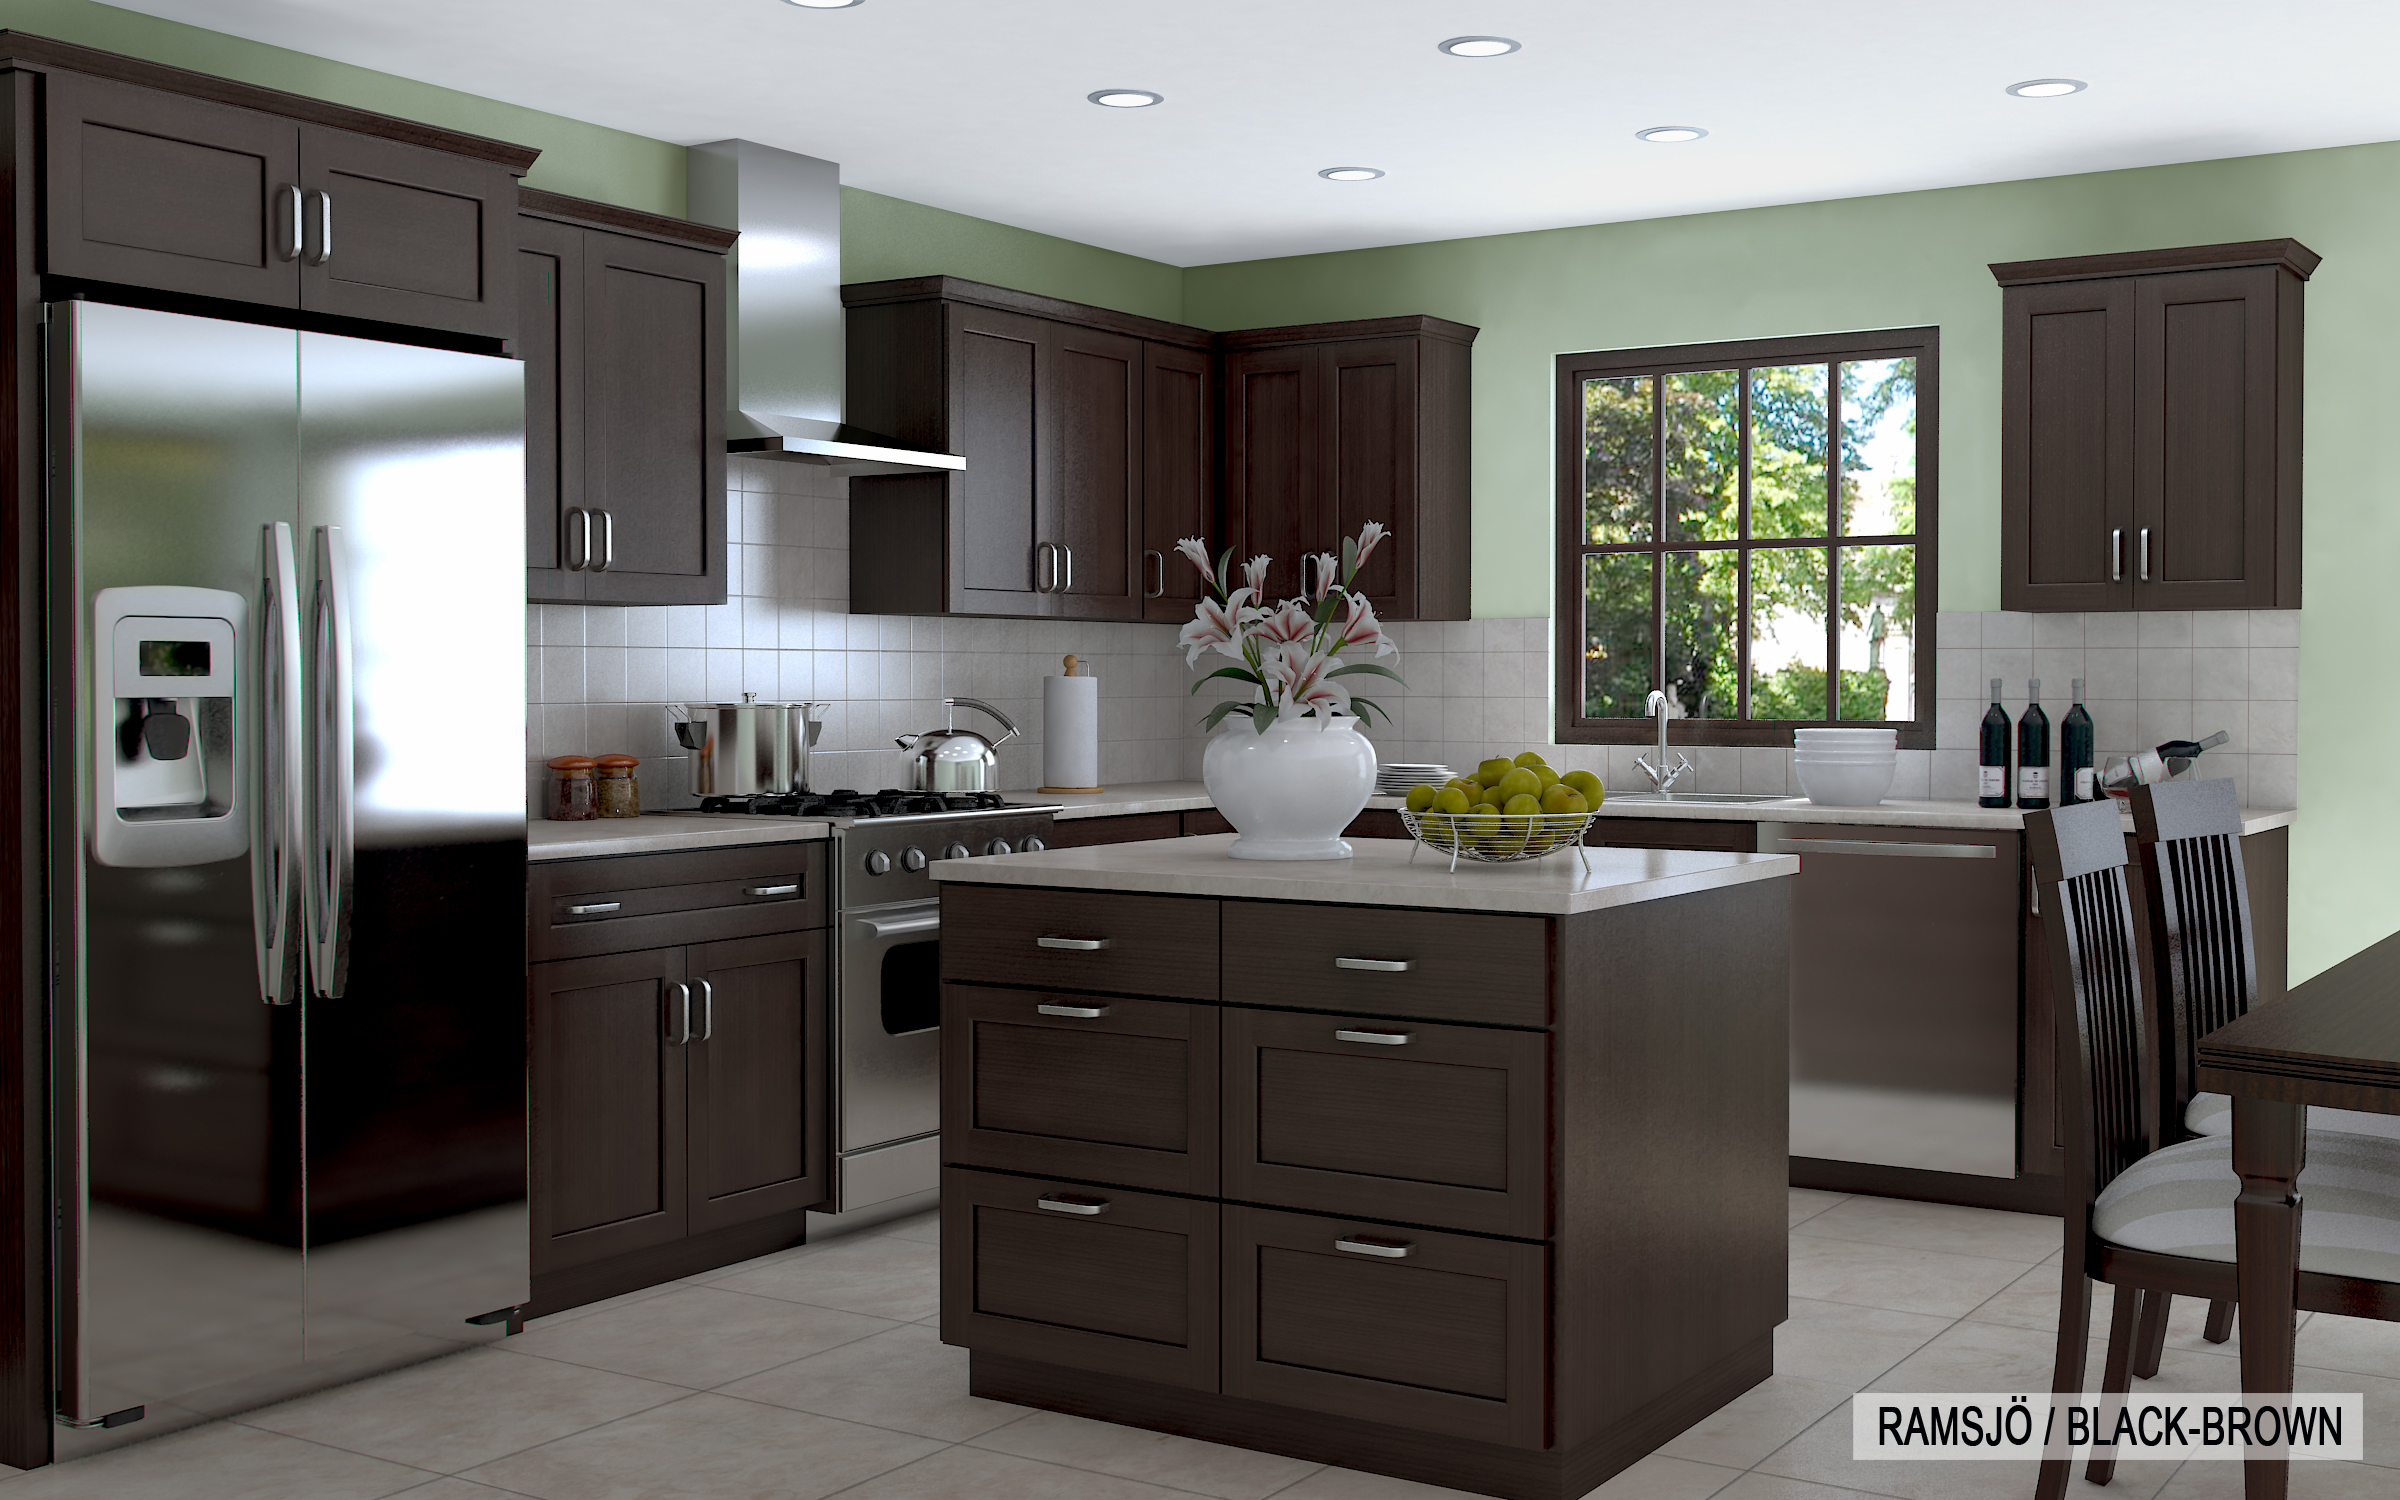 Ikea Kitchen Cabinet Design Ideas ~ Ikea international faktum versus akurum what s in a name